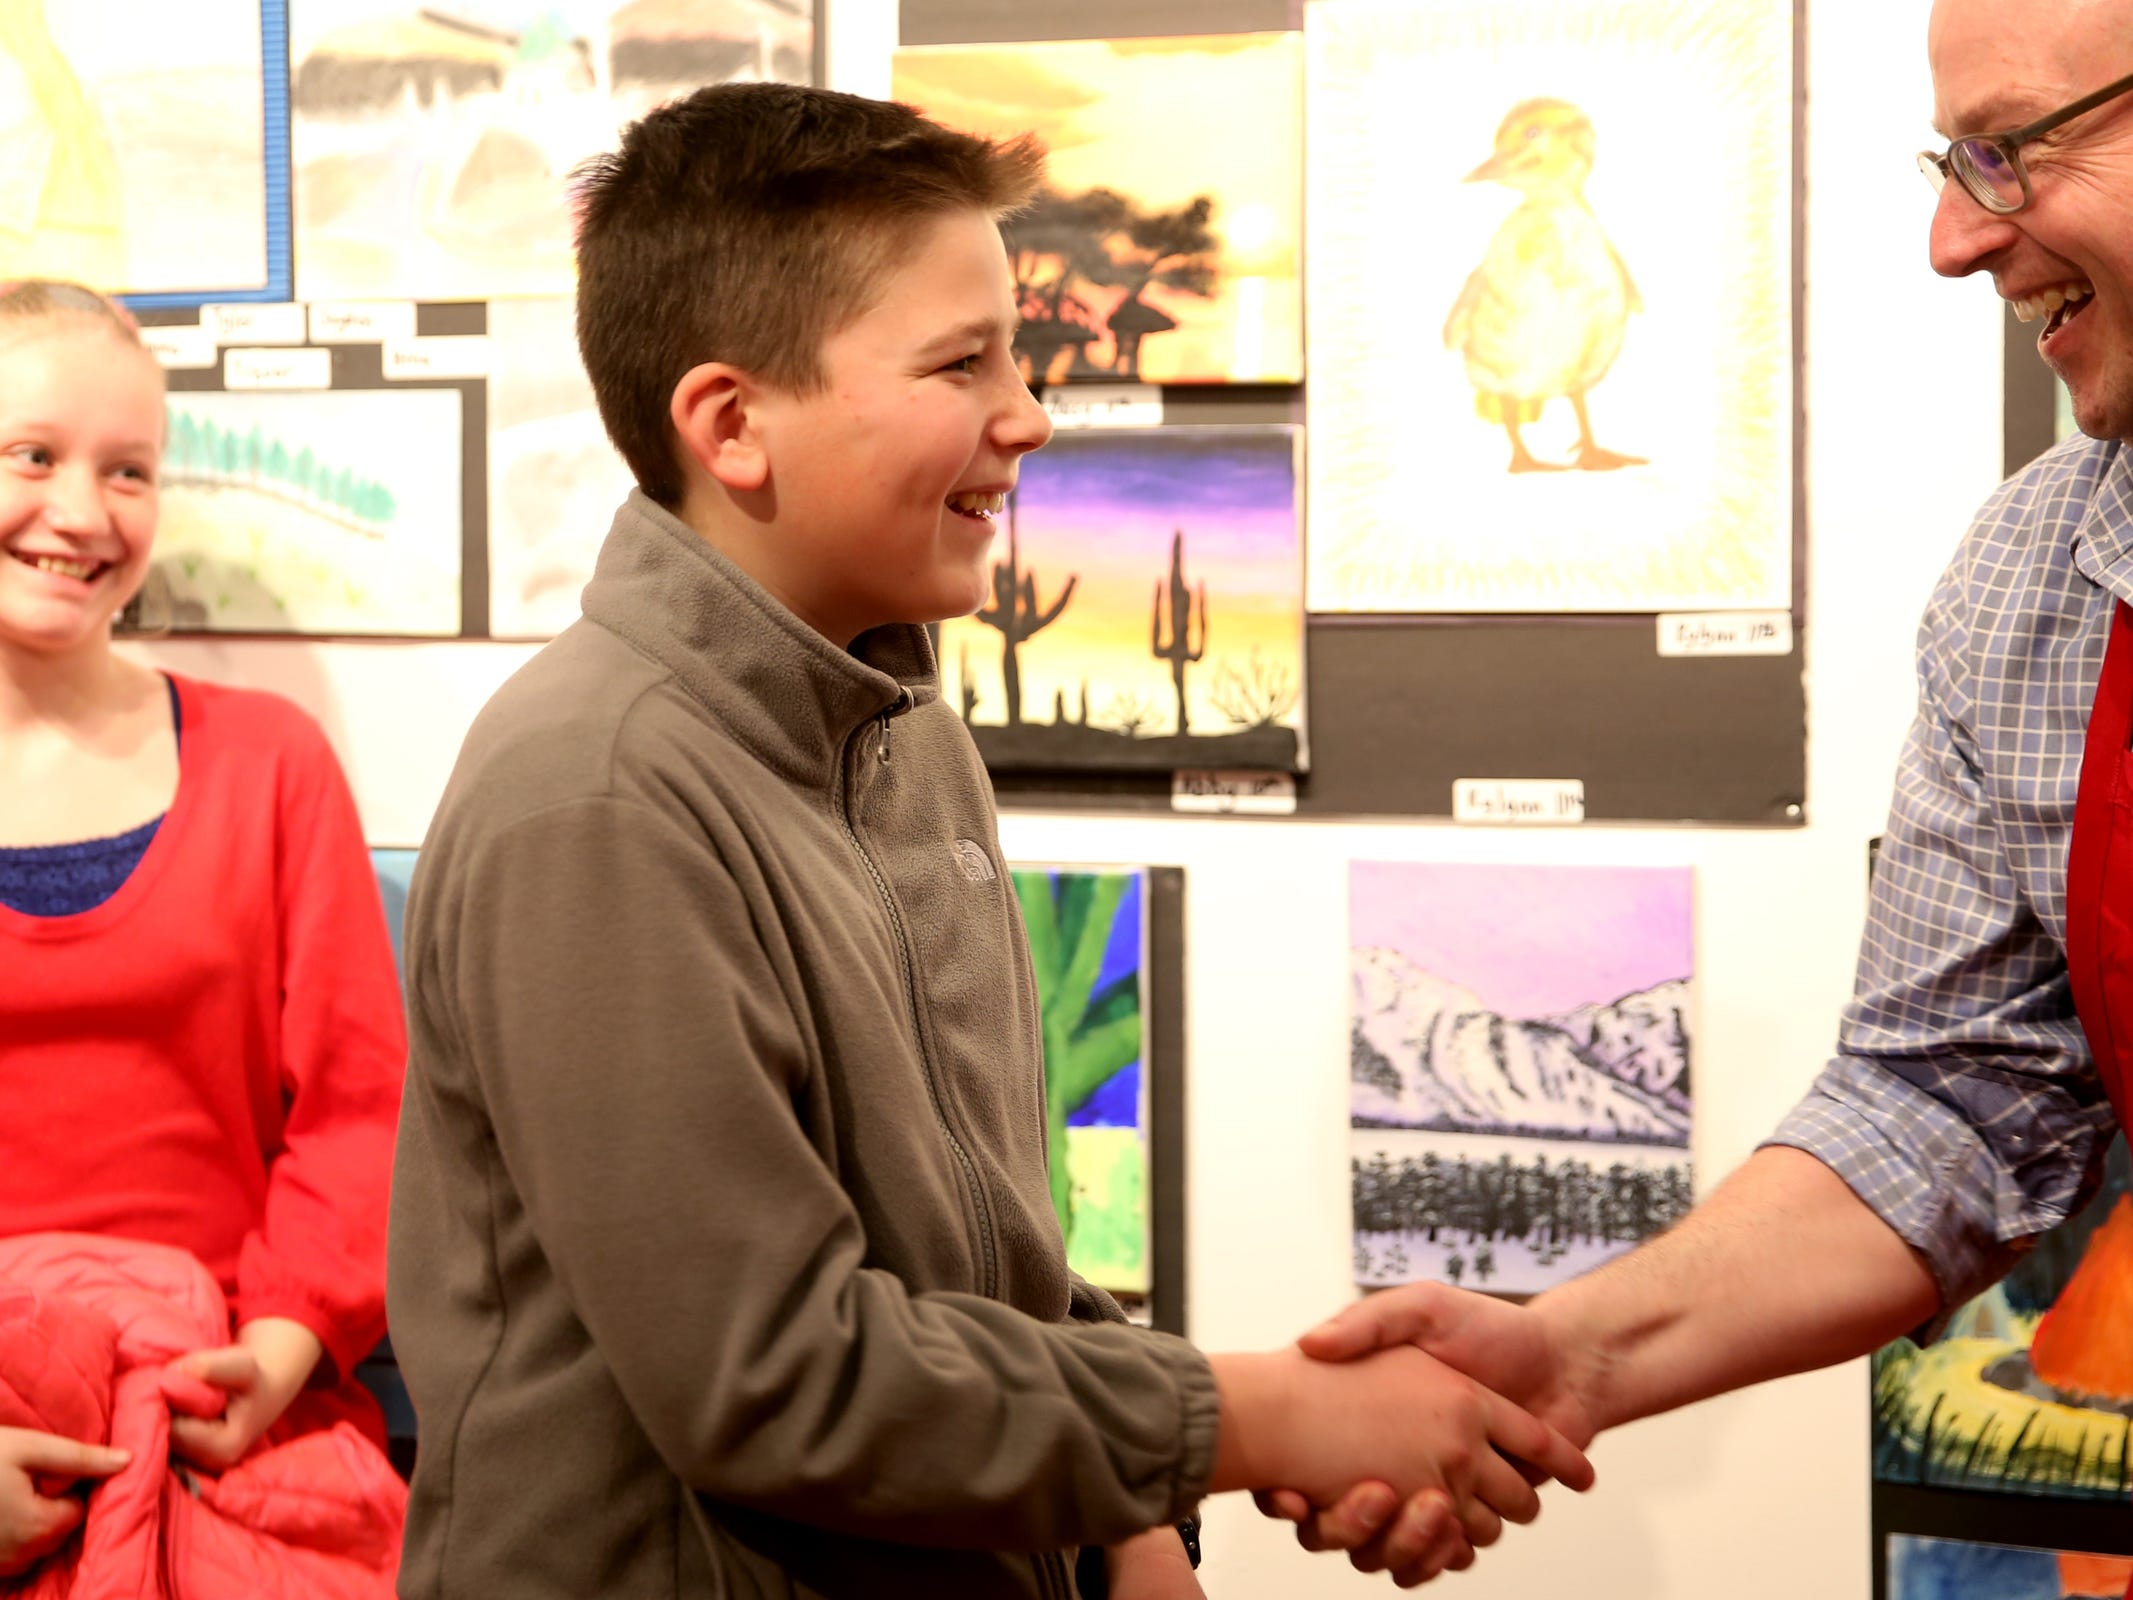 Nikita Matvechuk, from Mid-Valley Christian Academy, accepts the second-place award for middle schoolers during the 10th annual Young Artists' Showcase at the Bush Barn Art Center in Salem on March 9, 2019. The exhibit features artwork by more than 400 students in Marion, Polk and Yamhill counties and runs through April 20.